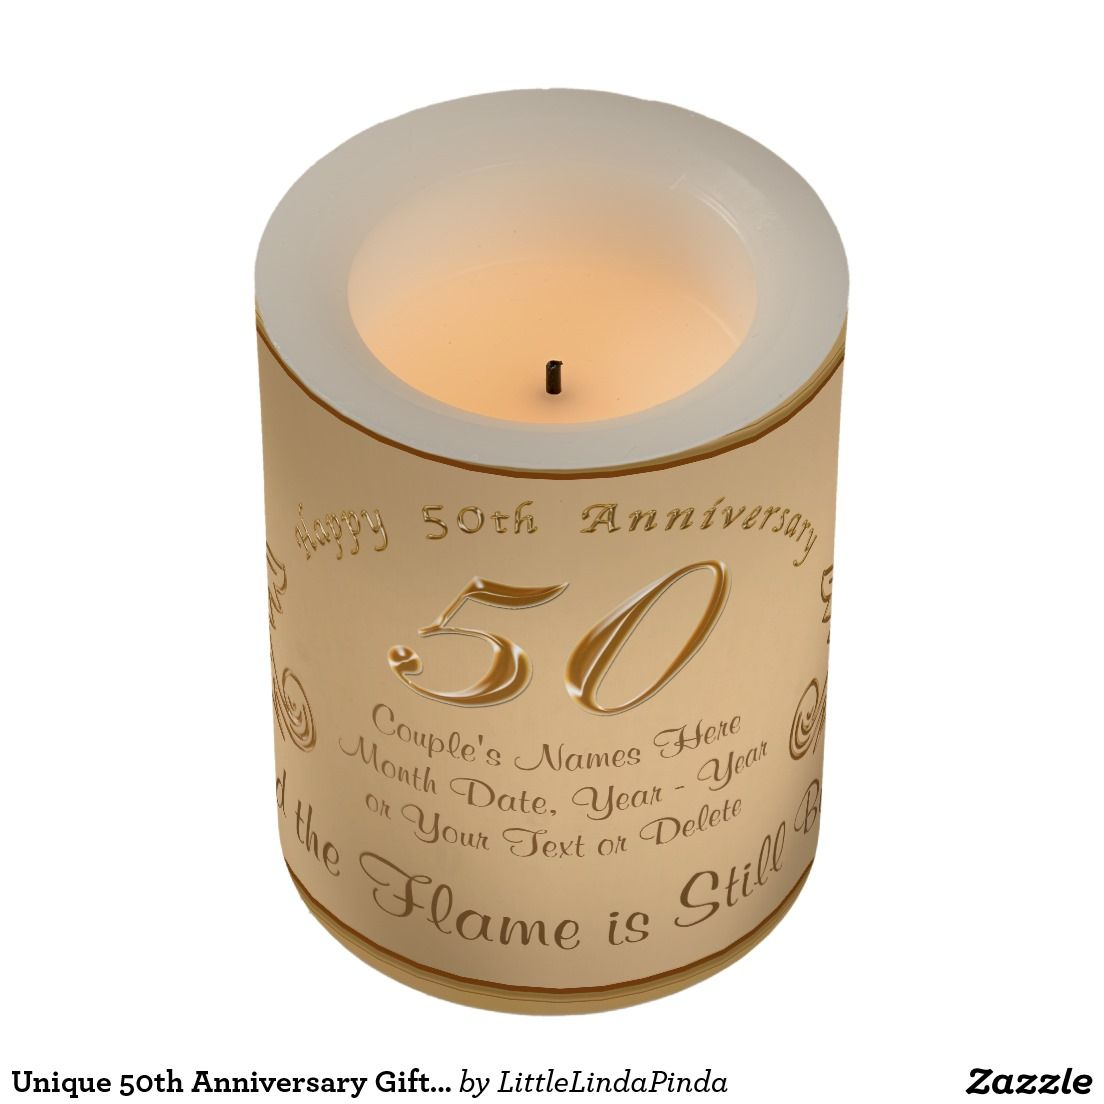 What Do You For 50th Wedding Anniversary Lovely Gifts Personalized Flameless